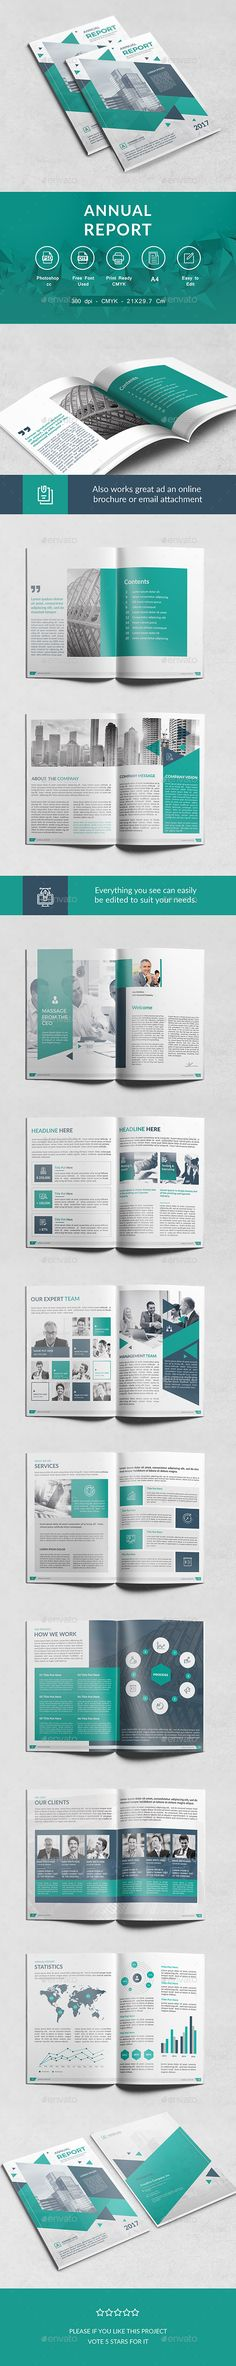 Tumblr Layout Pinterest Tumblr - annual report cover page template